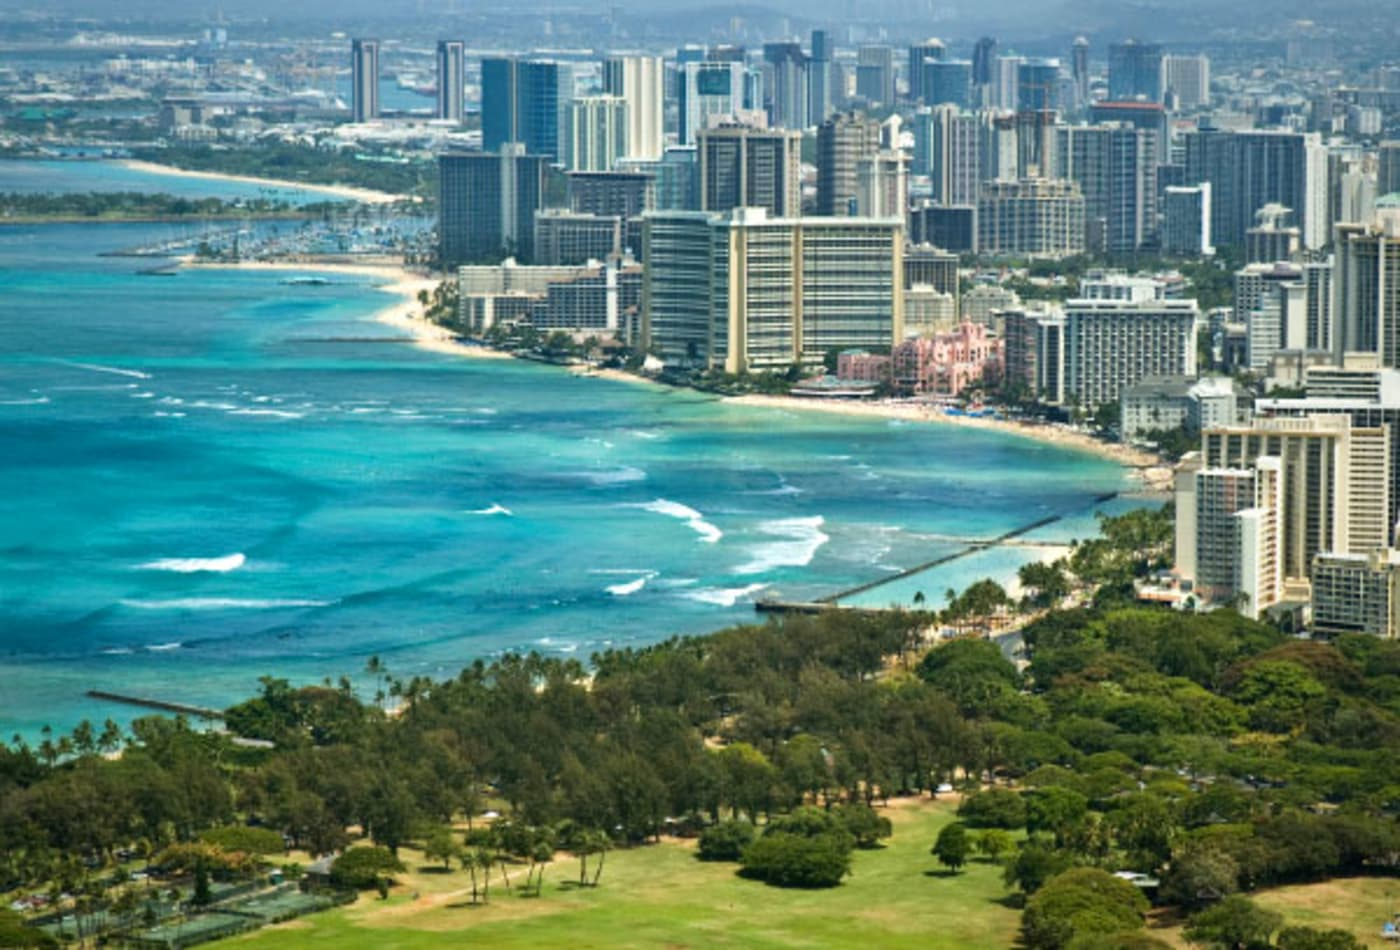 Hawaii-States-Most-Federal-Funding-CNBC.jpg